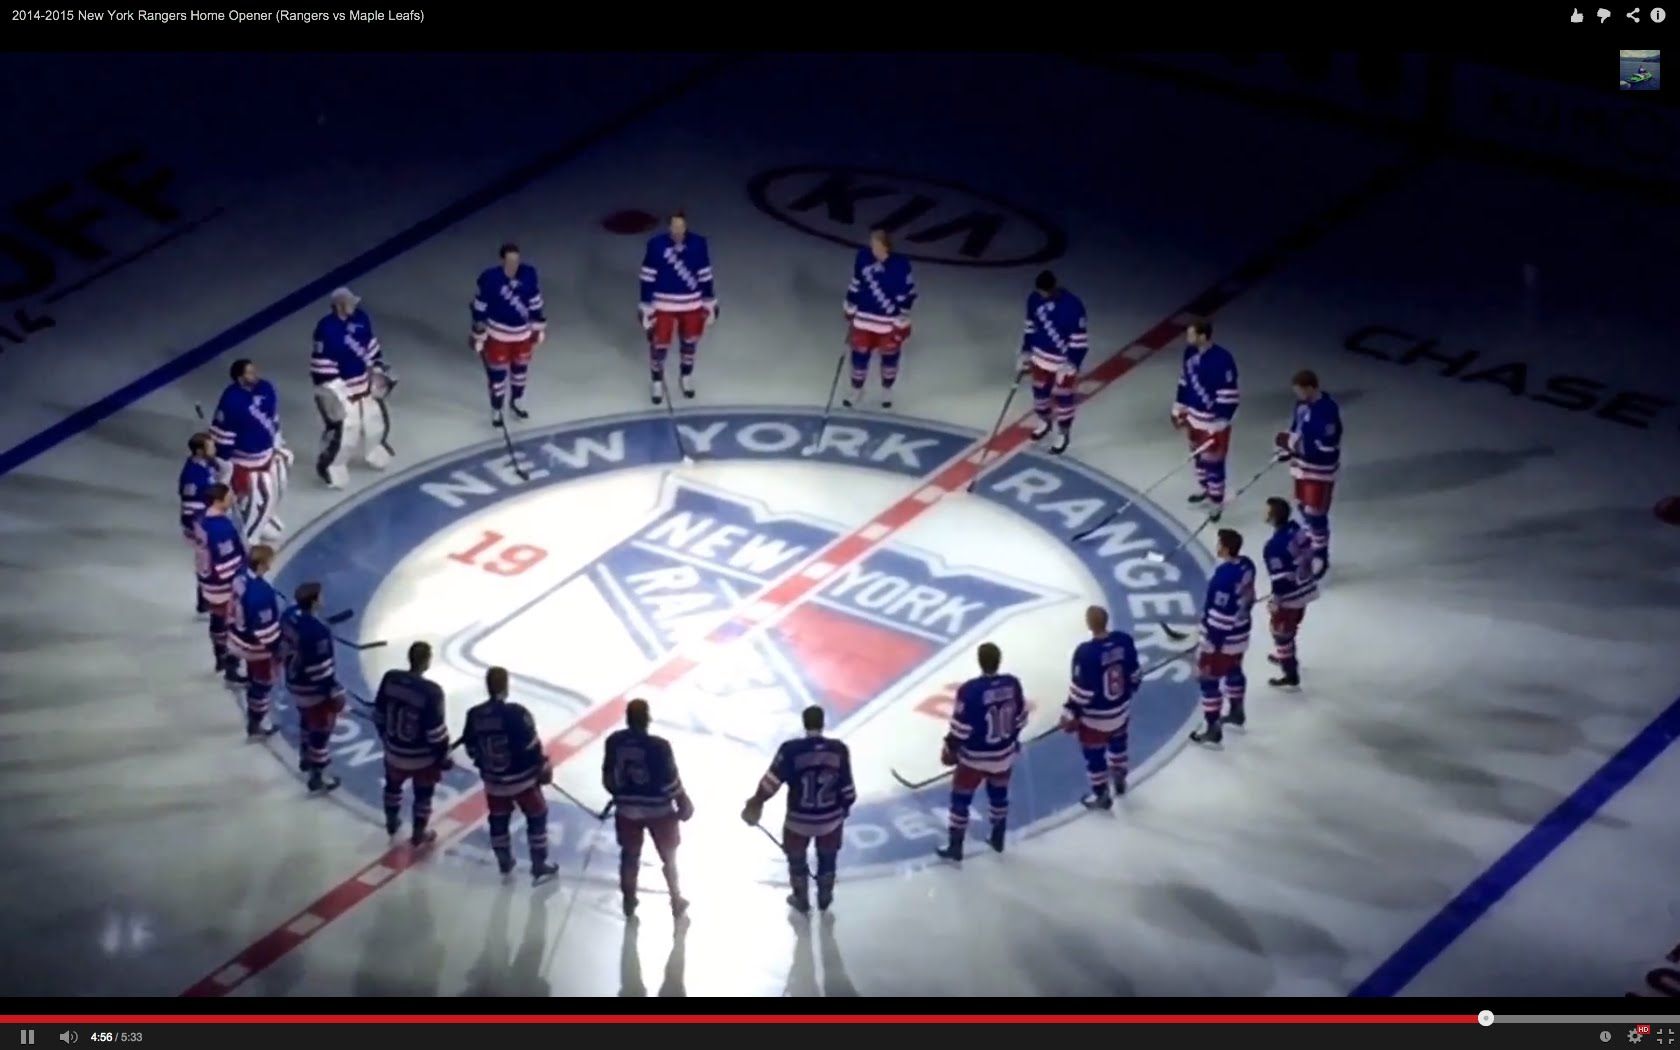 2014 2015 New York Rangers Home Opener 1680x1050